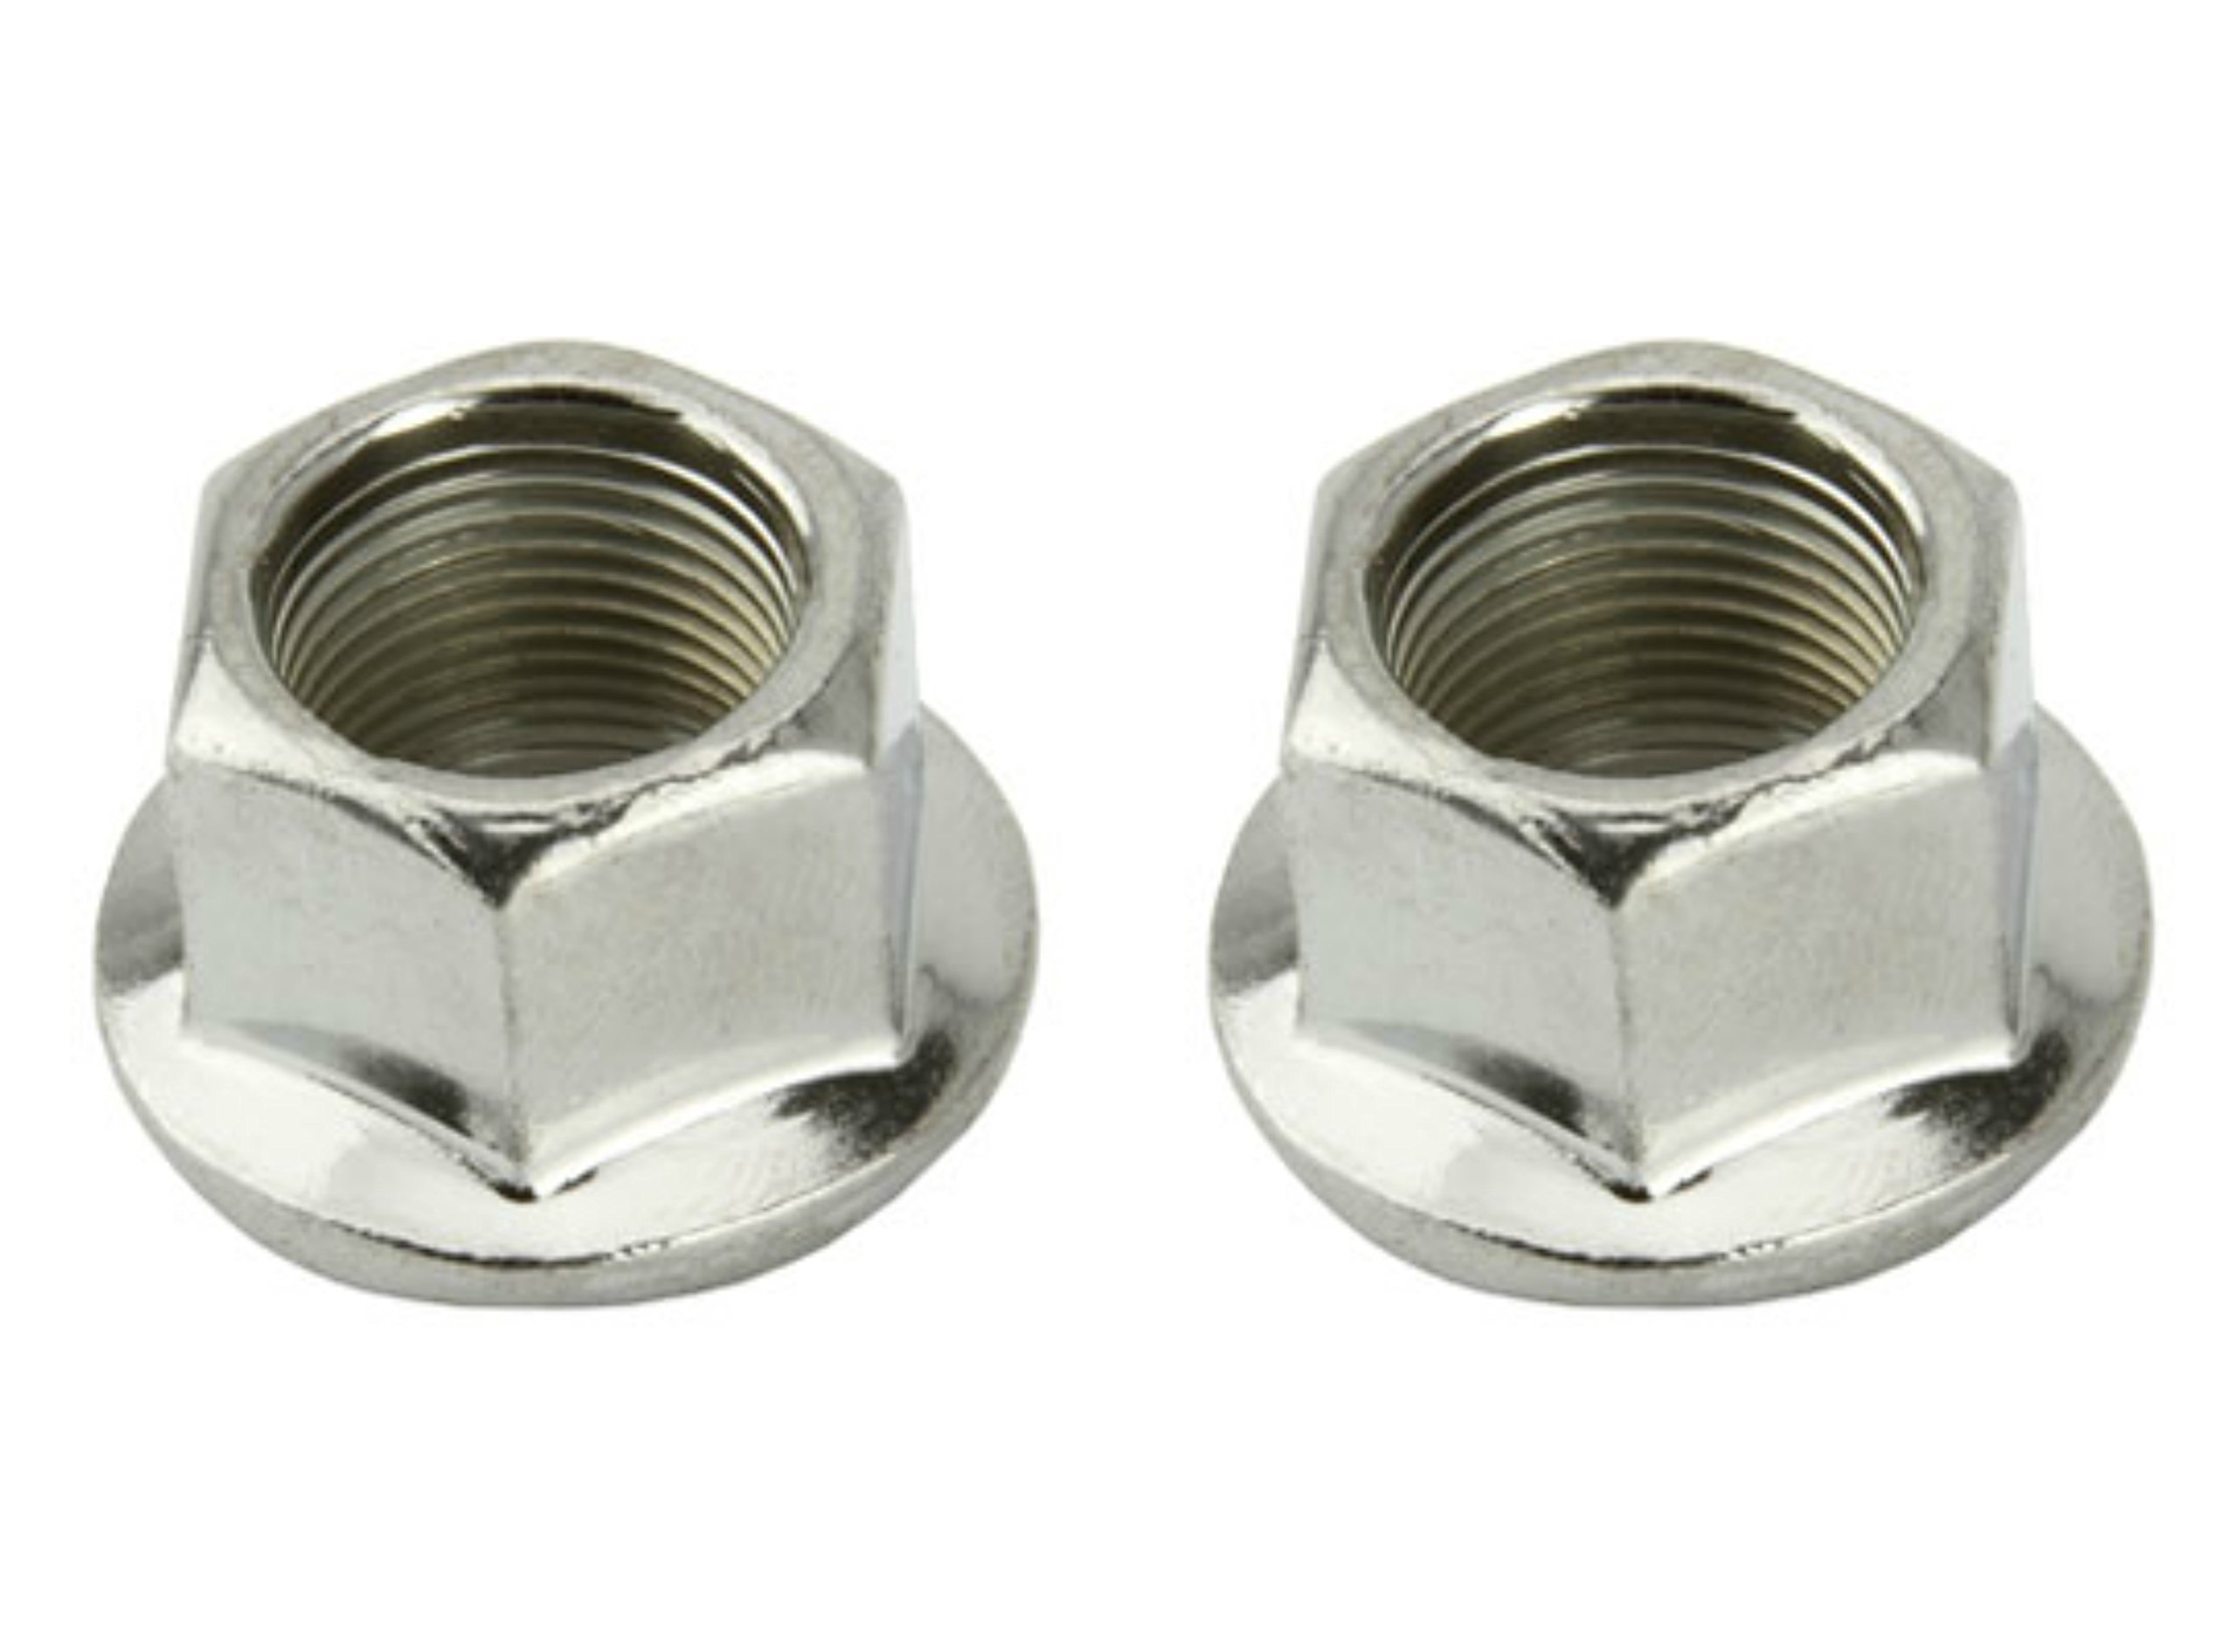 Lowrider 2 - Flange Nuts 14mm Chrome. Set of axle nut. Pair of axle nut. Bicycle nut, bike nut, beach cruiser, chopper, mountain, limo